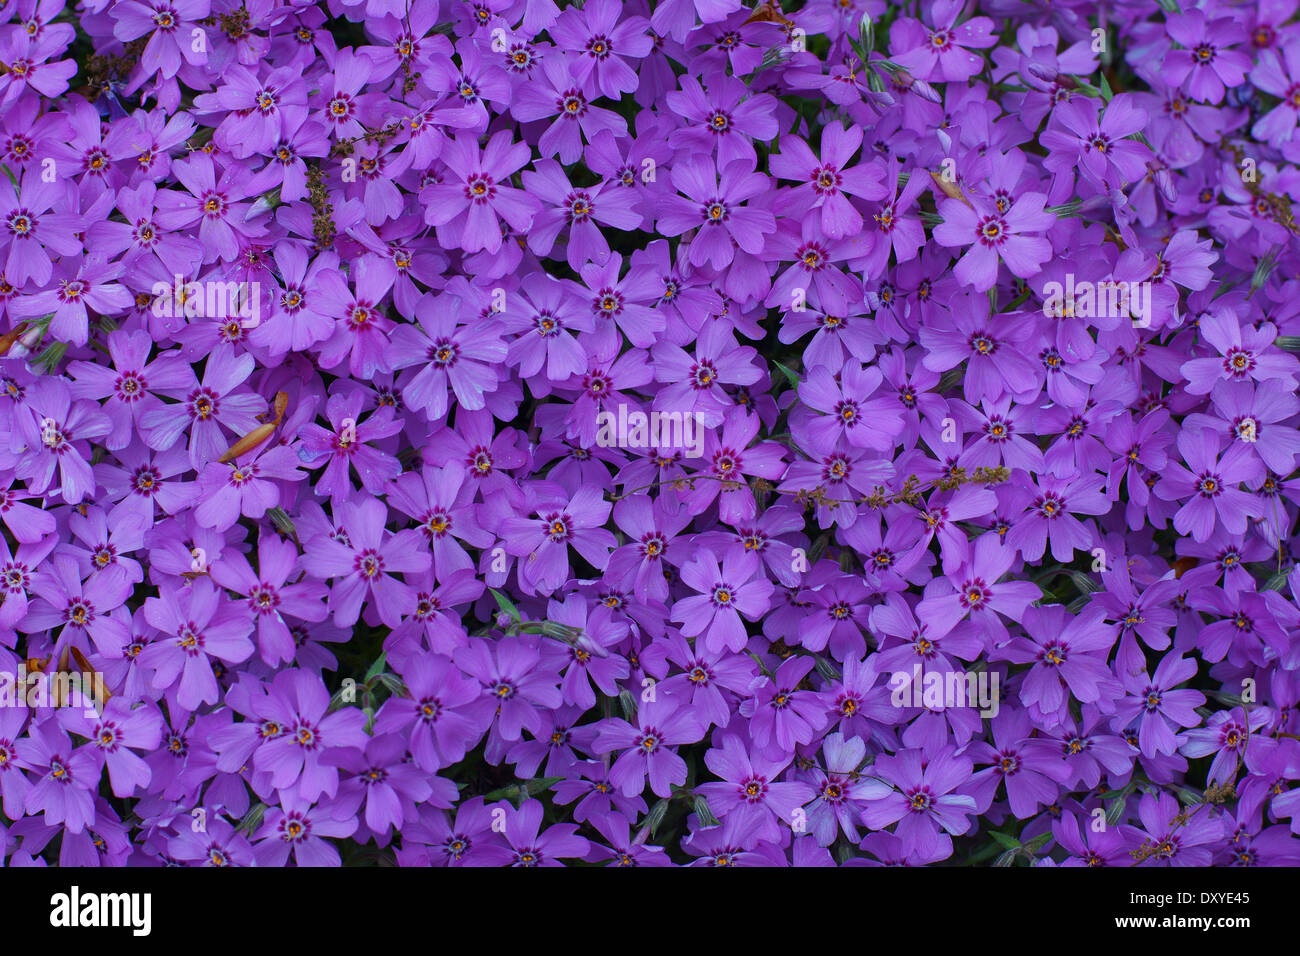 Little purple flowers stock photos little purple flowers stock numerous little purple flowers gathered tightly together stock image mightylinksfo